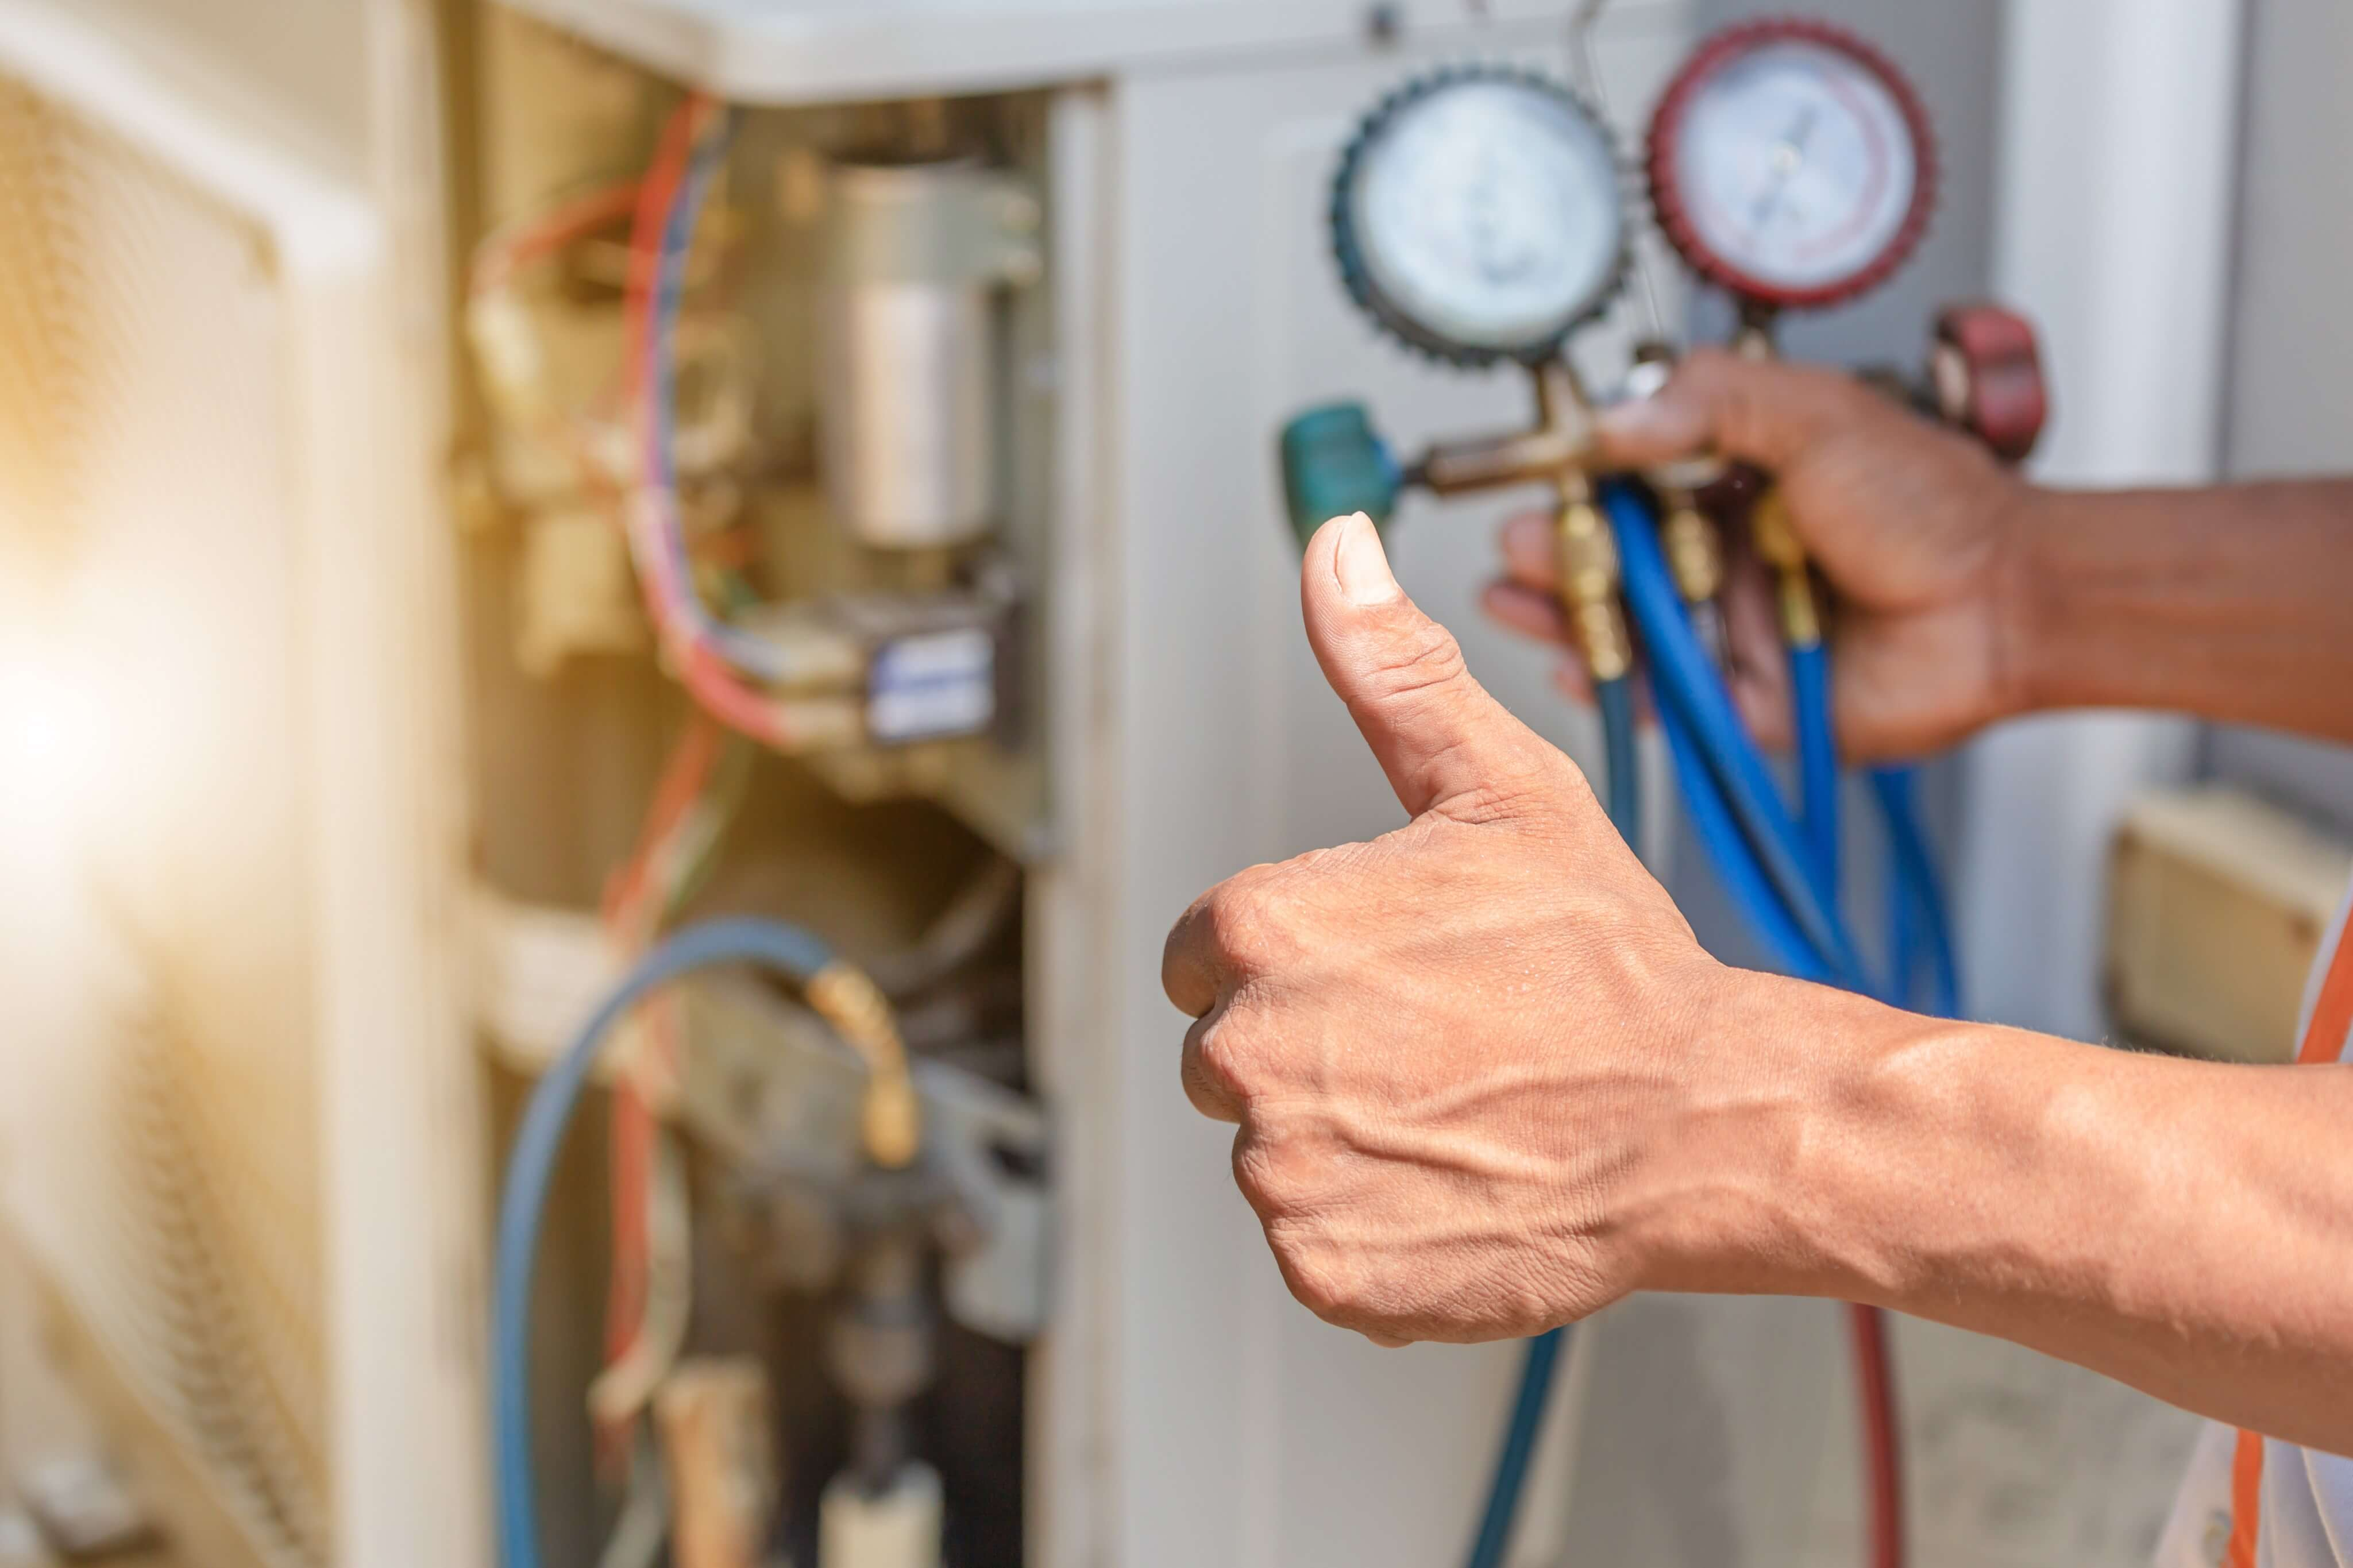 Why Getting a New Central Air Conditioner Means You Should Consider a Furnace System Overhaul